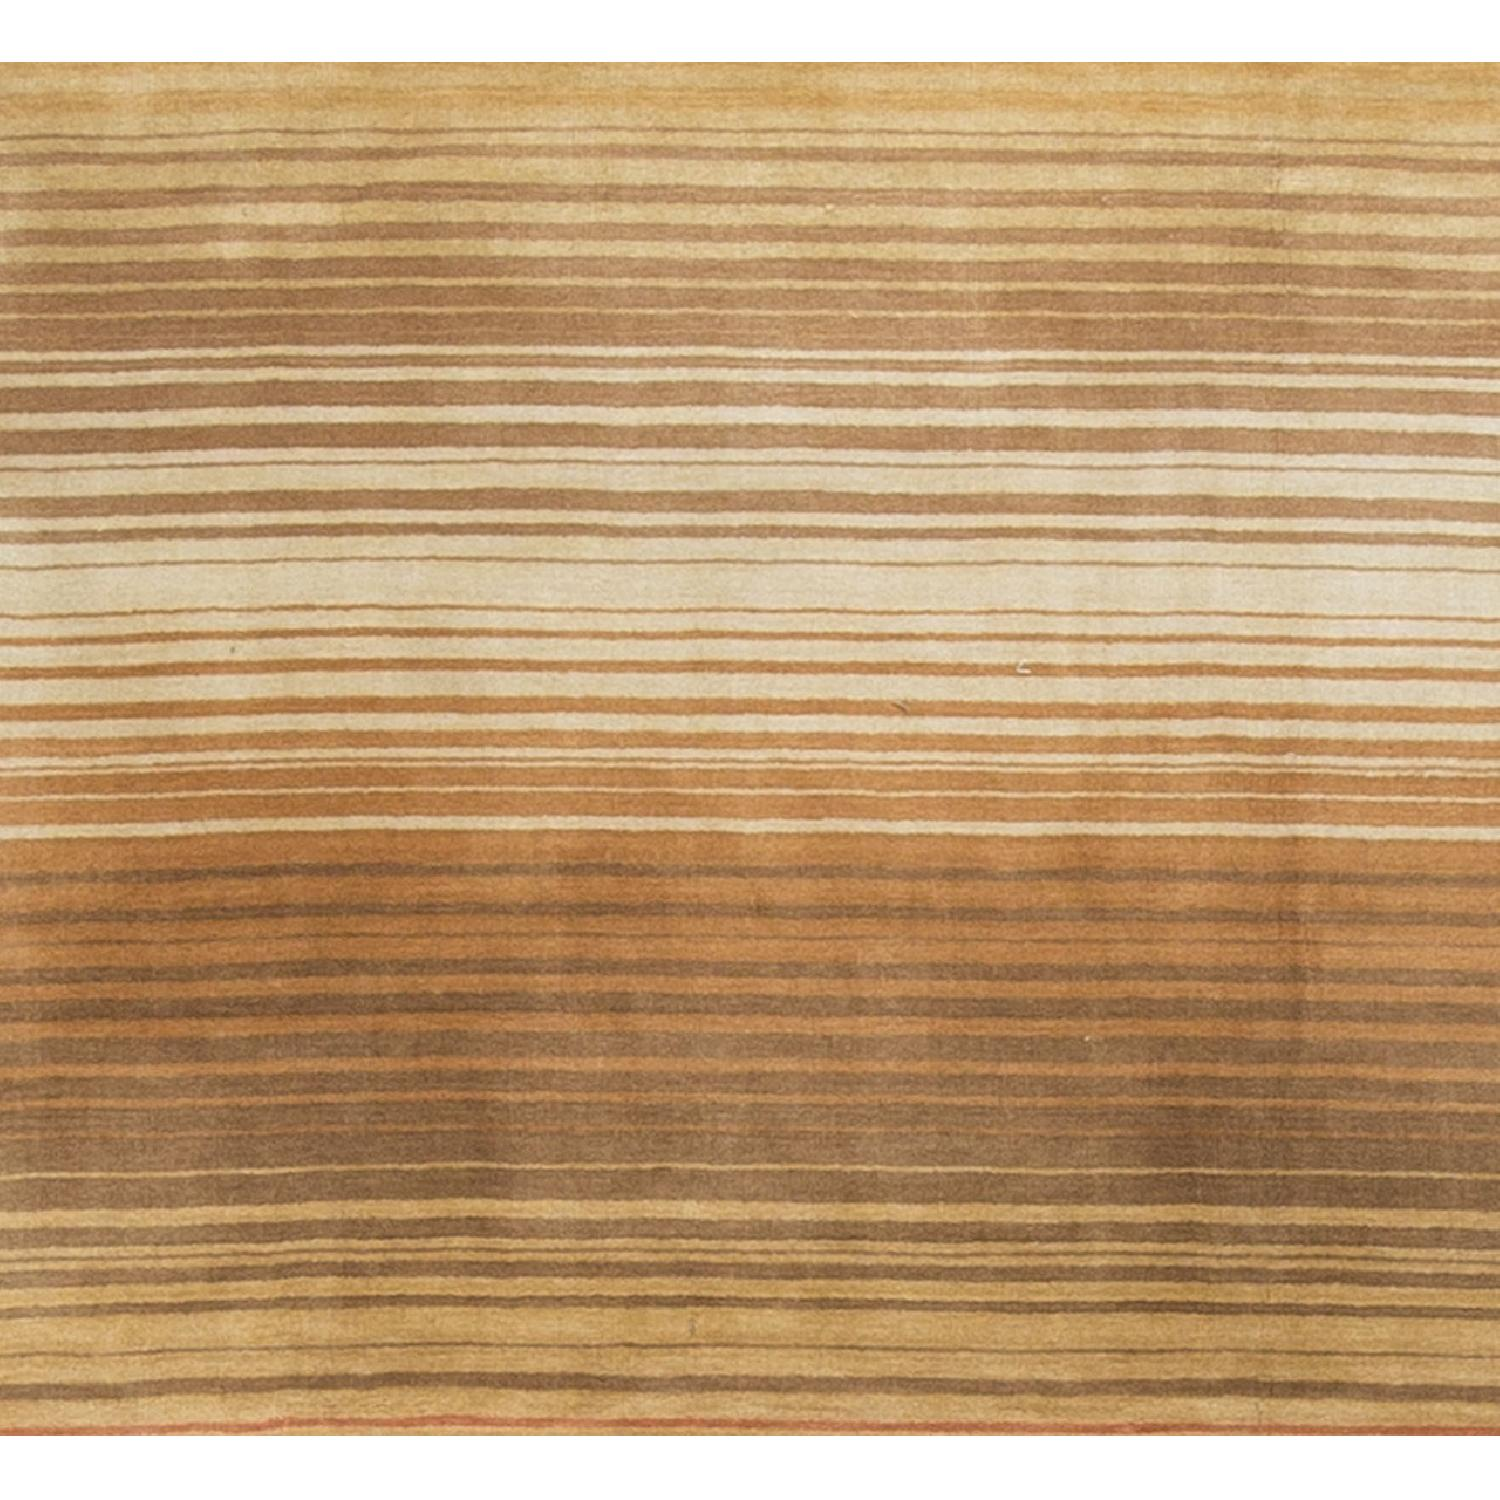 Modern Contemporary Hand Knotted Wool Rug in Soft Pastels - image-2